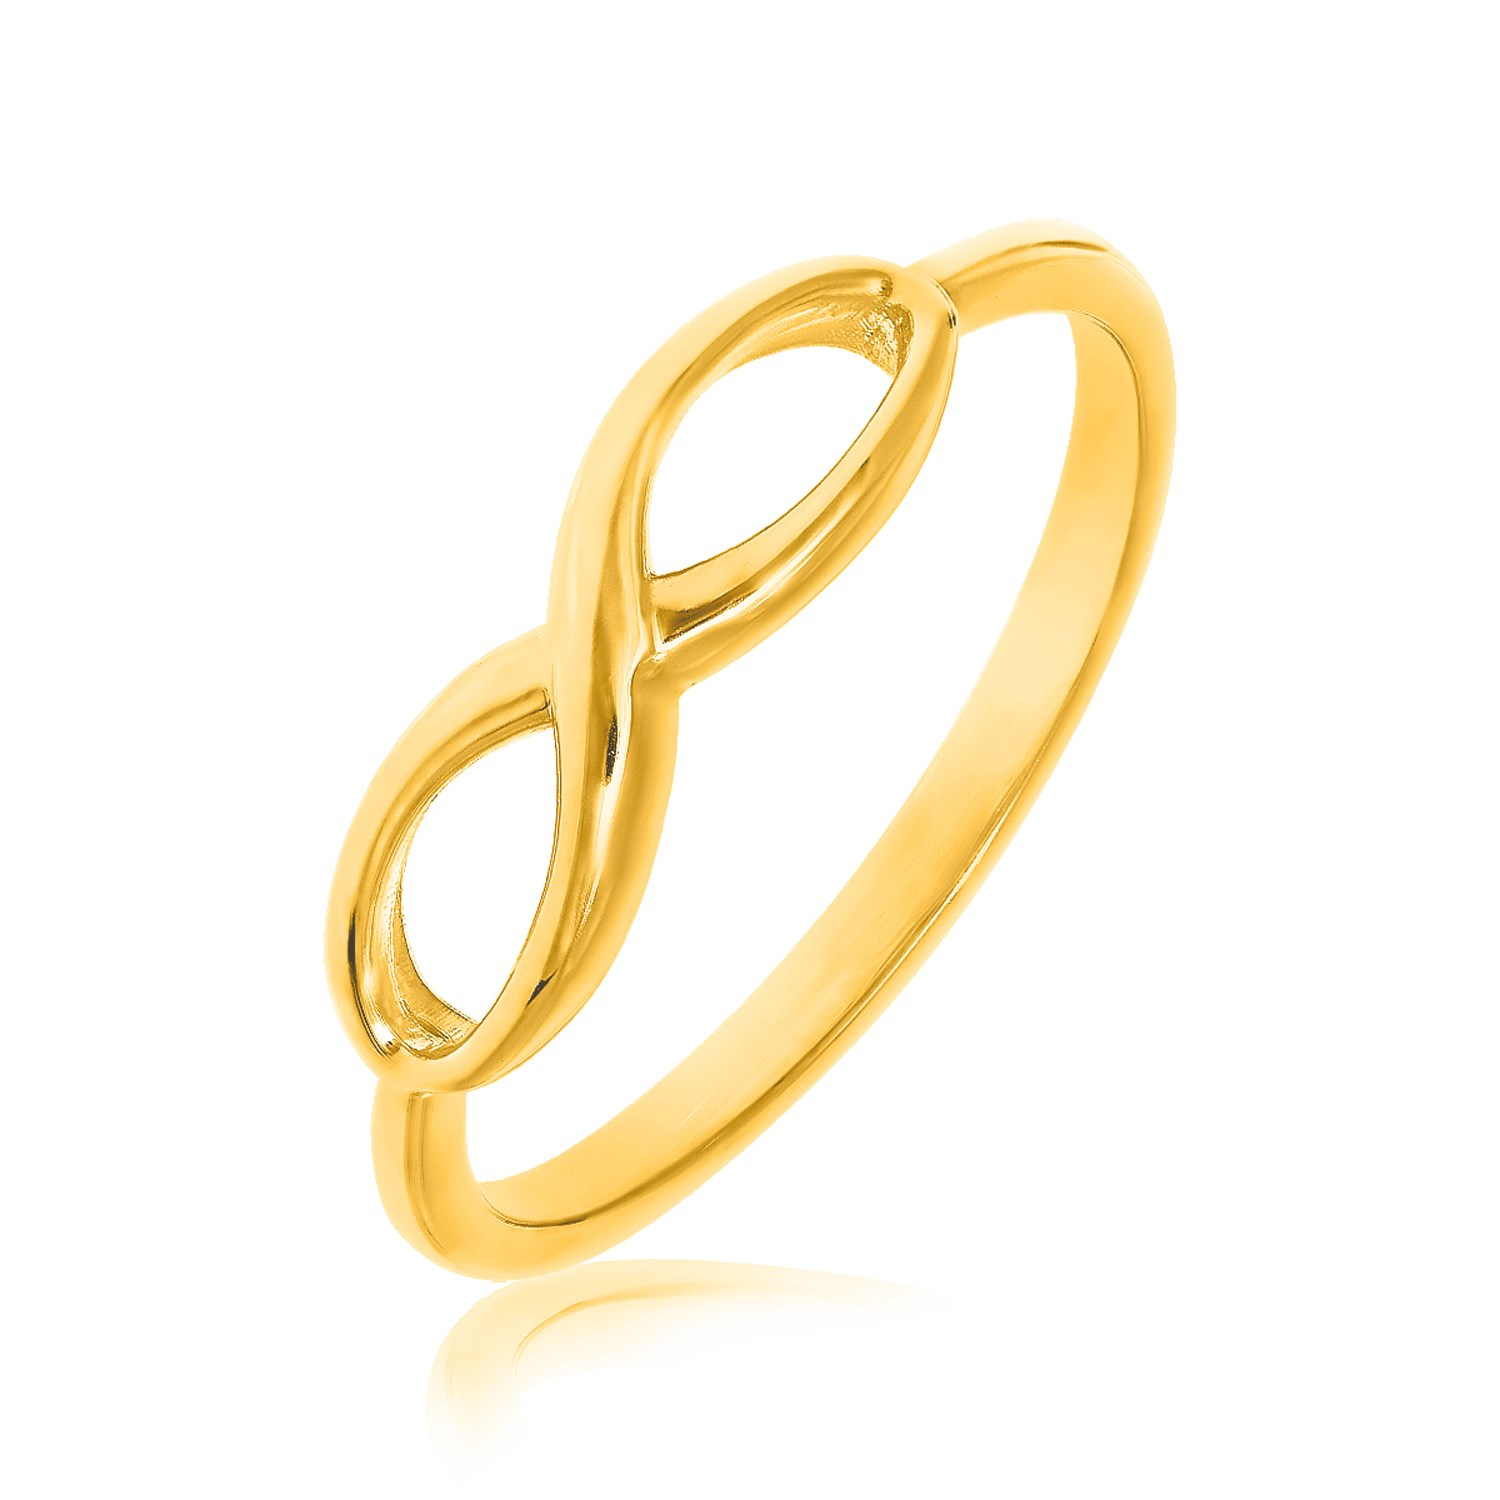 14k yellow gold infinity ring in high